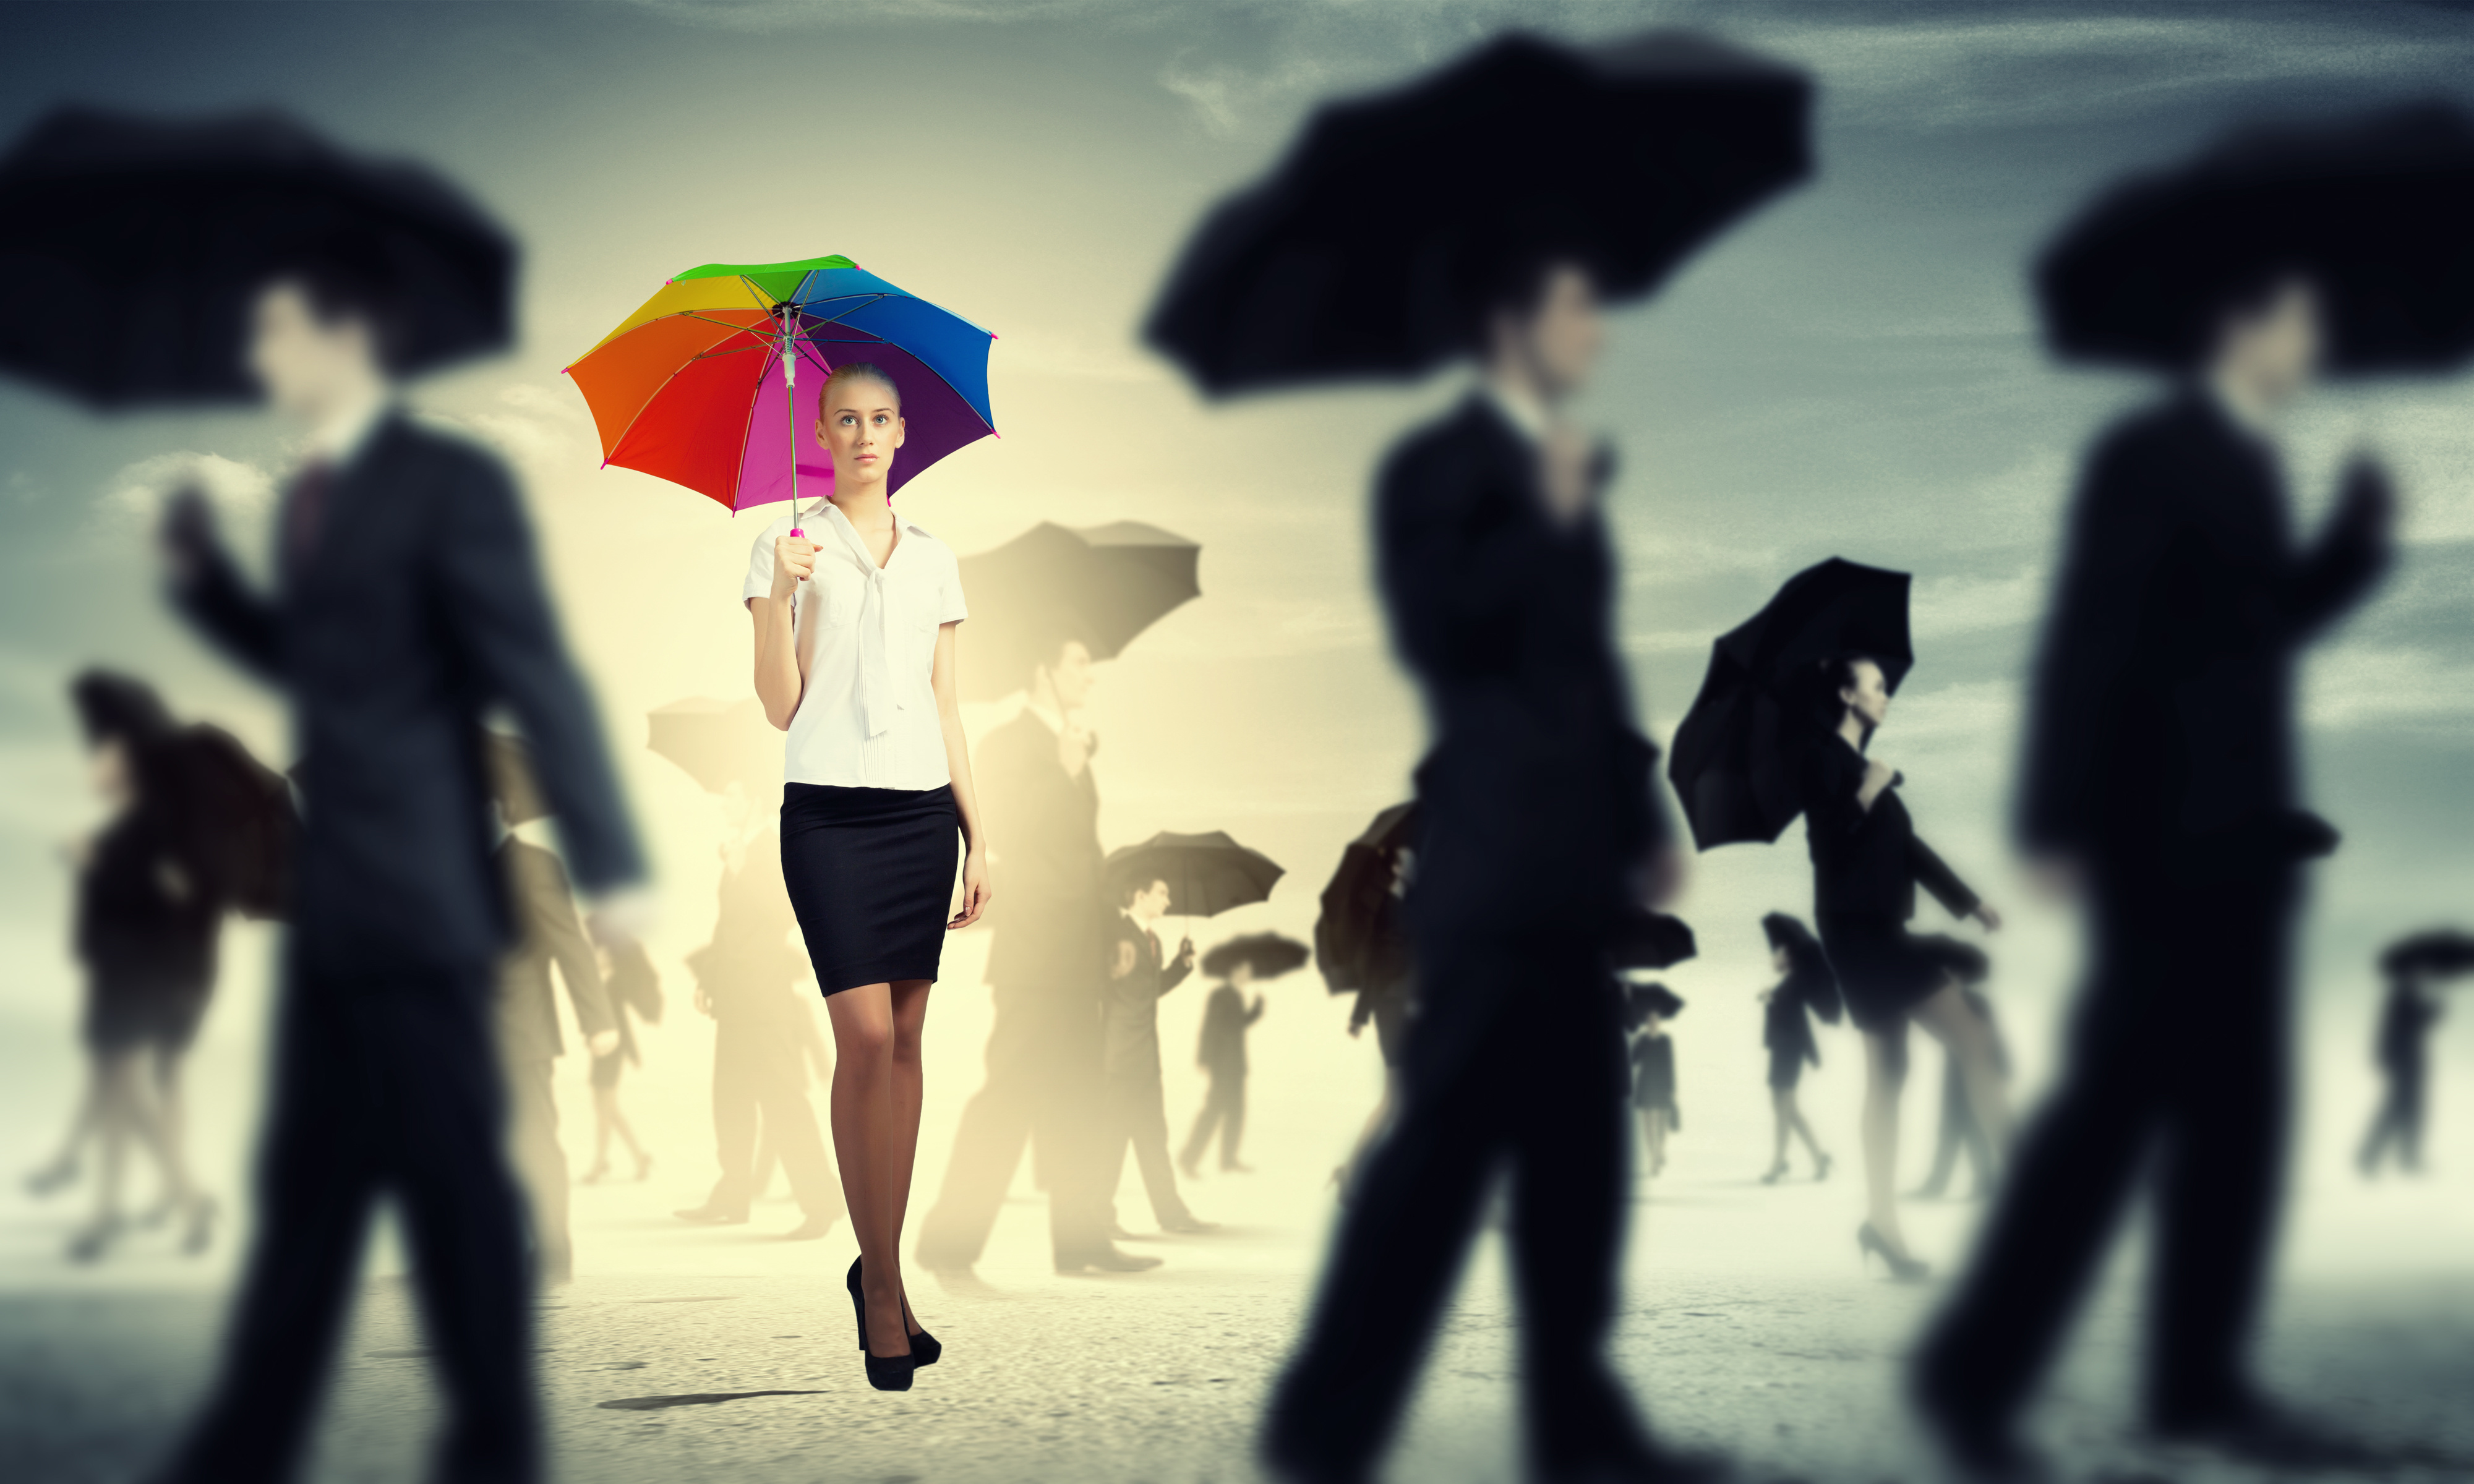 Business woman walking through crowd with umbrella